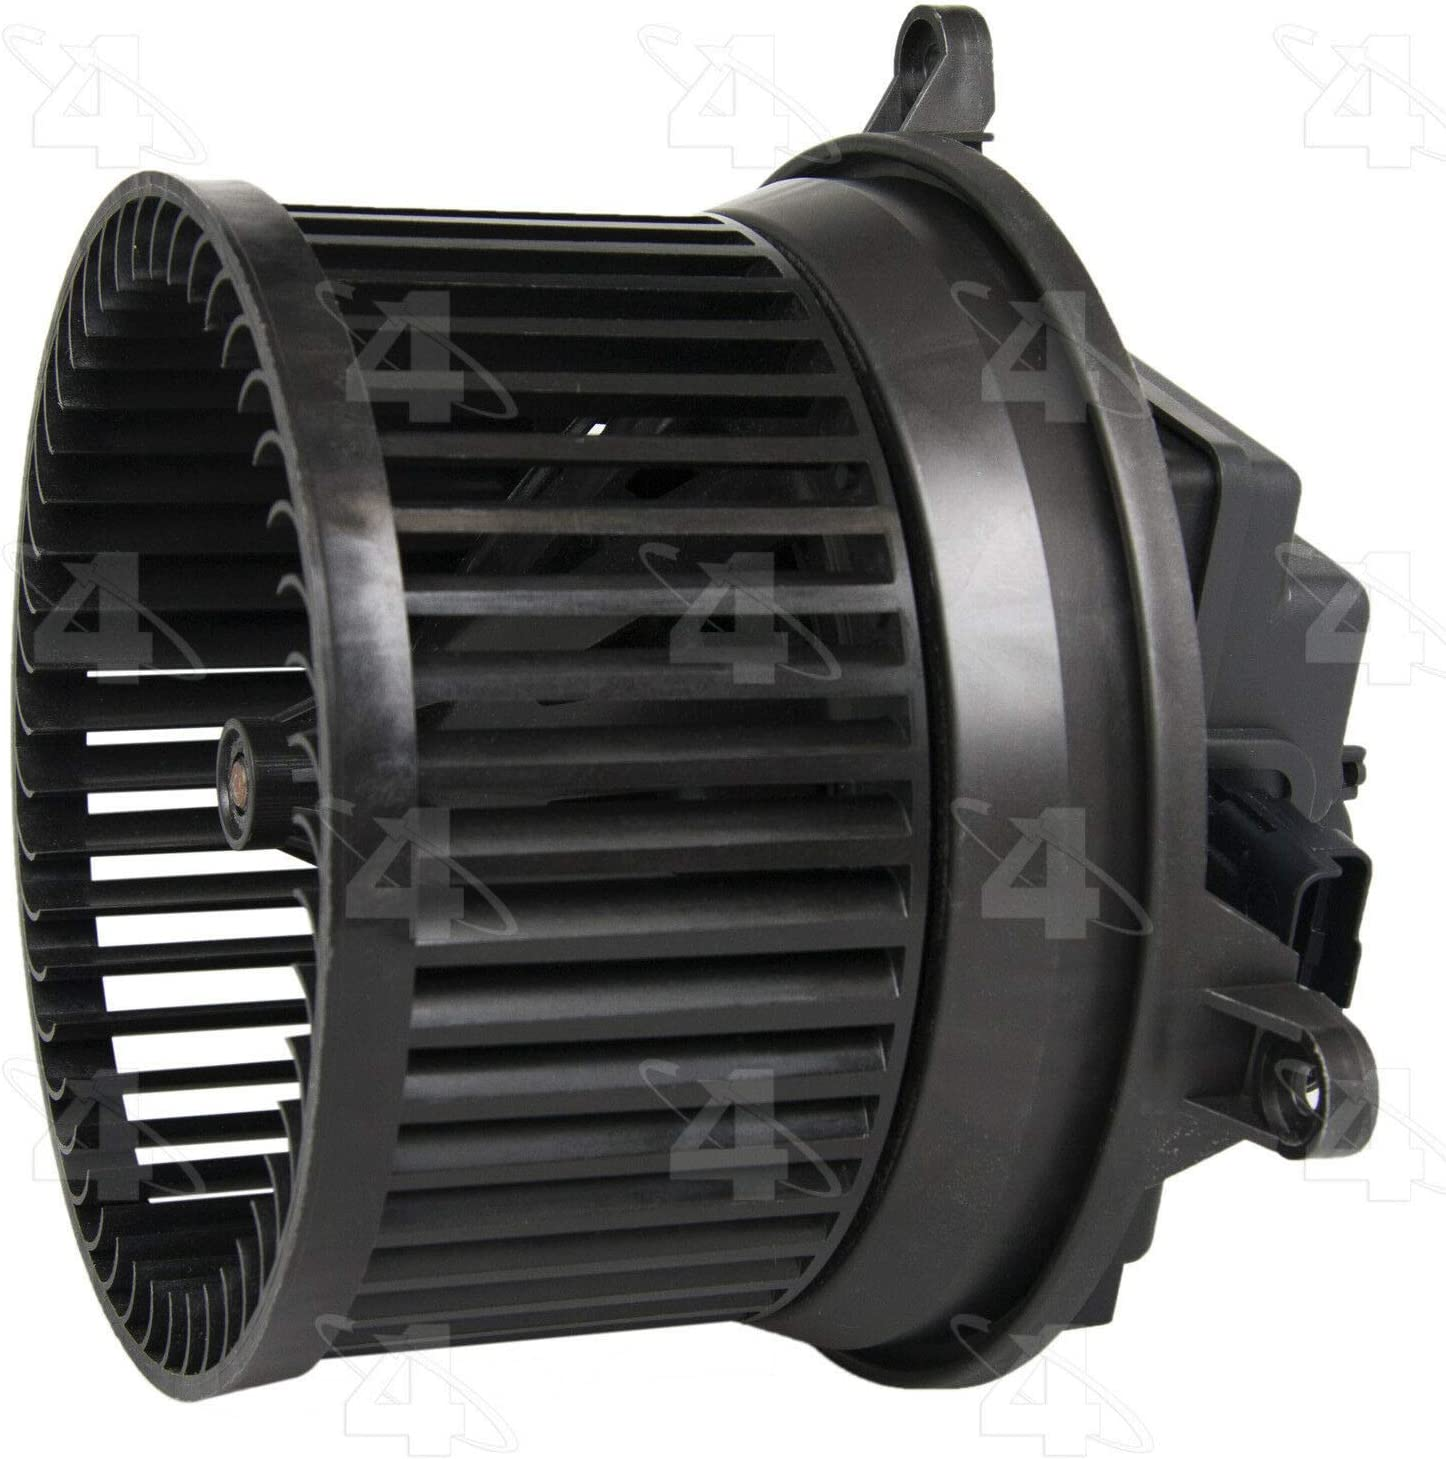 Four Seasons 76944 Flanged Vented CW Blower Motor w/Wheel